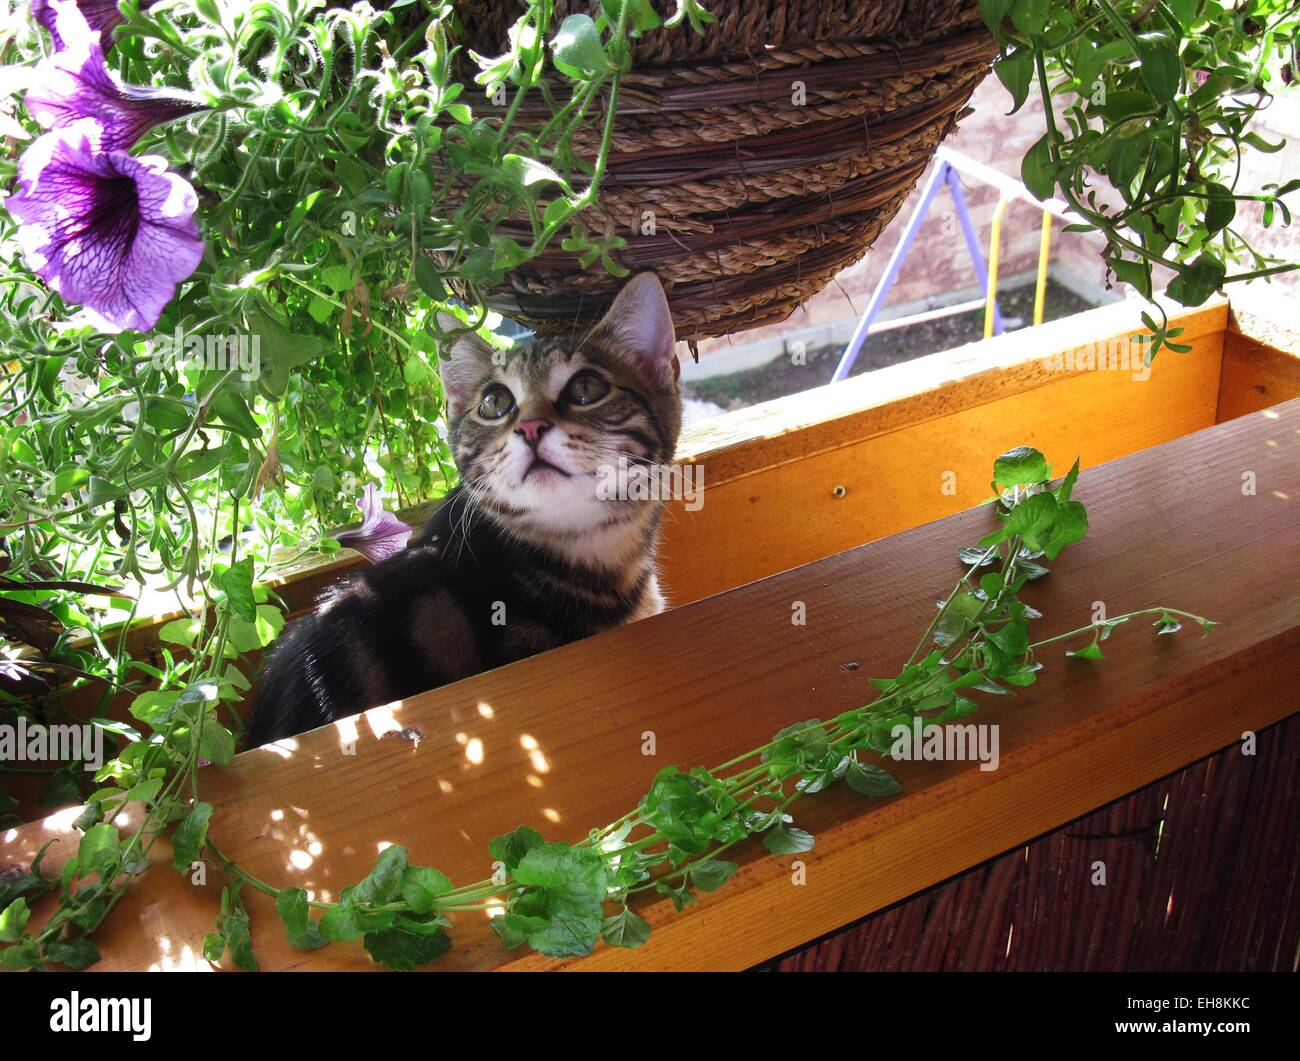 Tabby cat looking up at a hanging basket with purple flowers - Stock Image